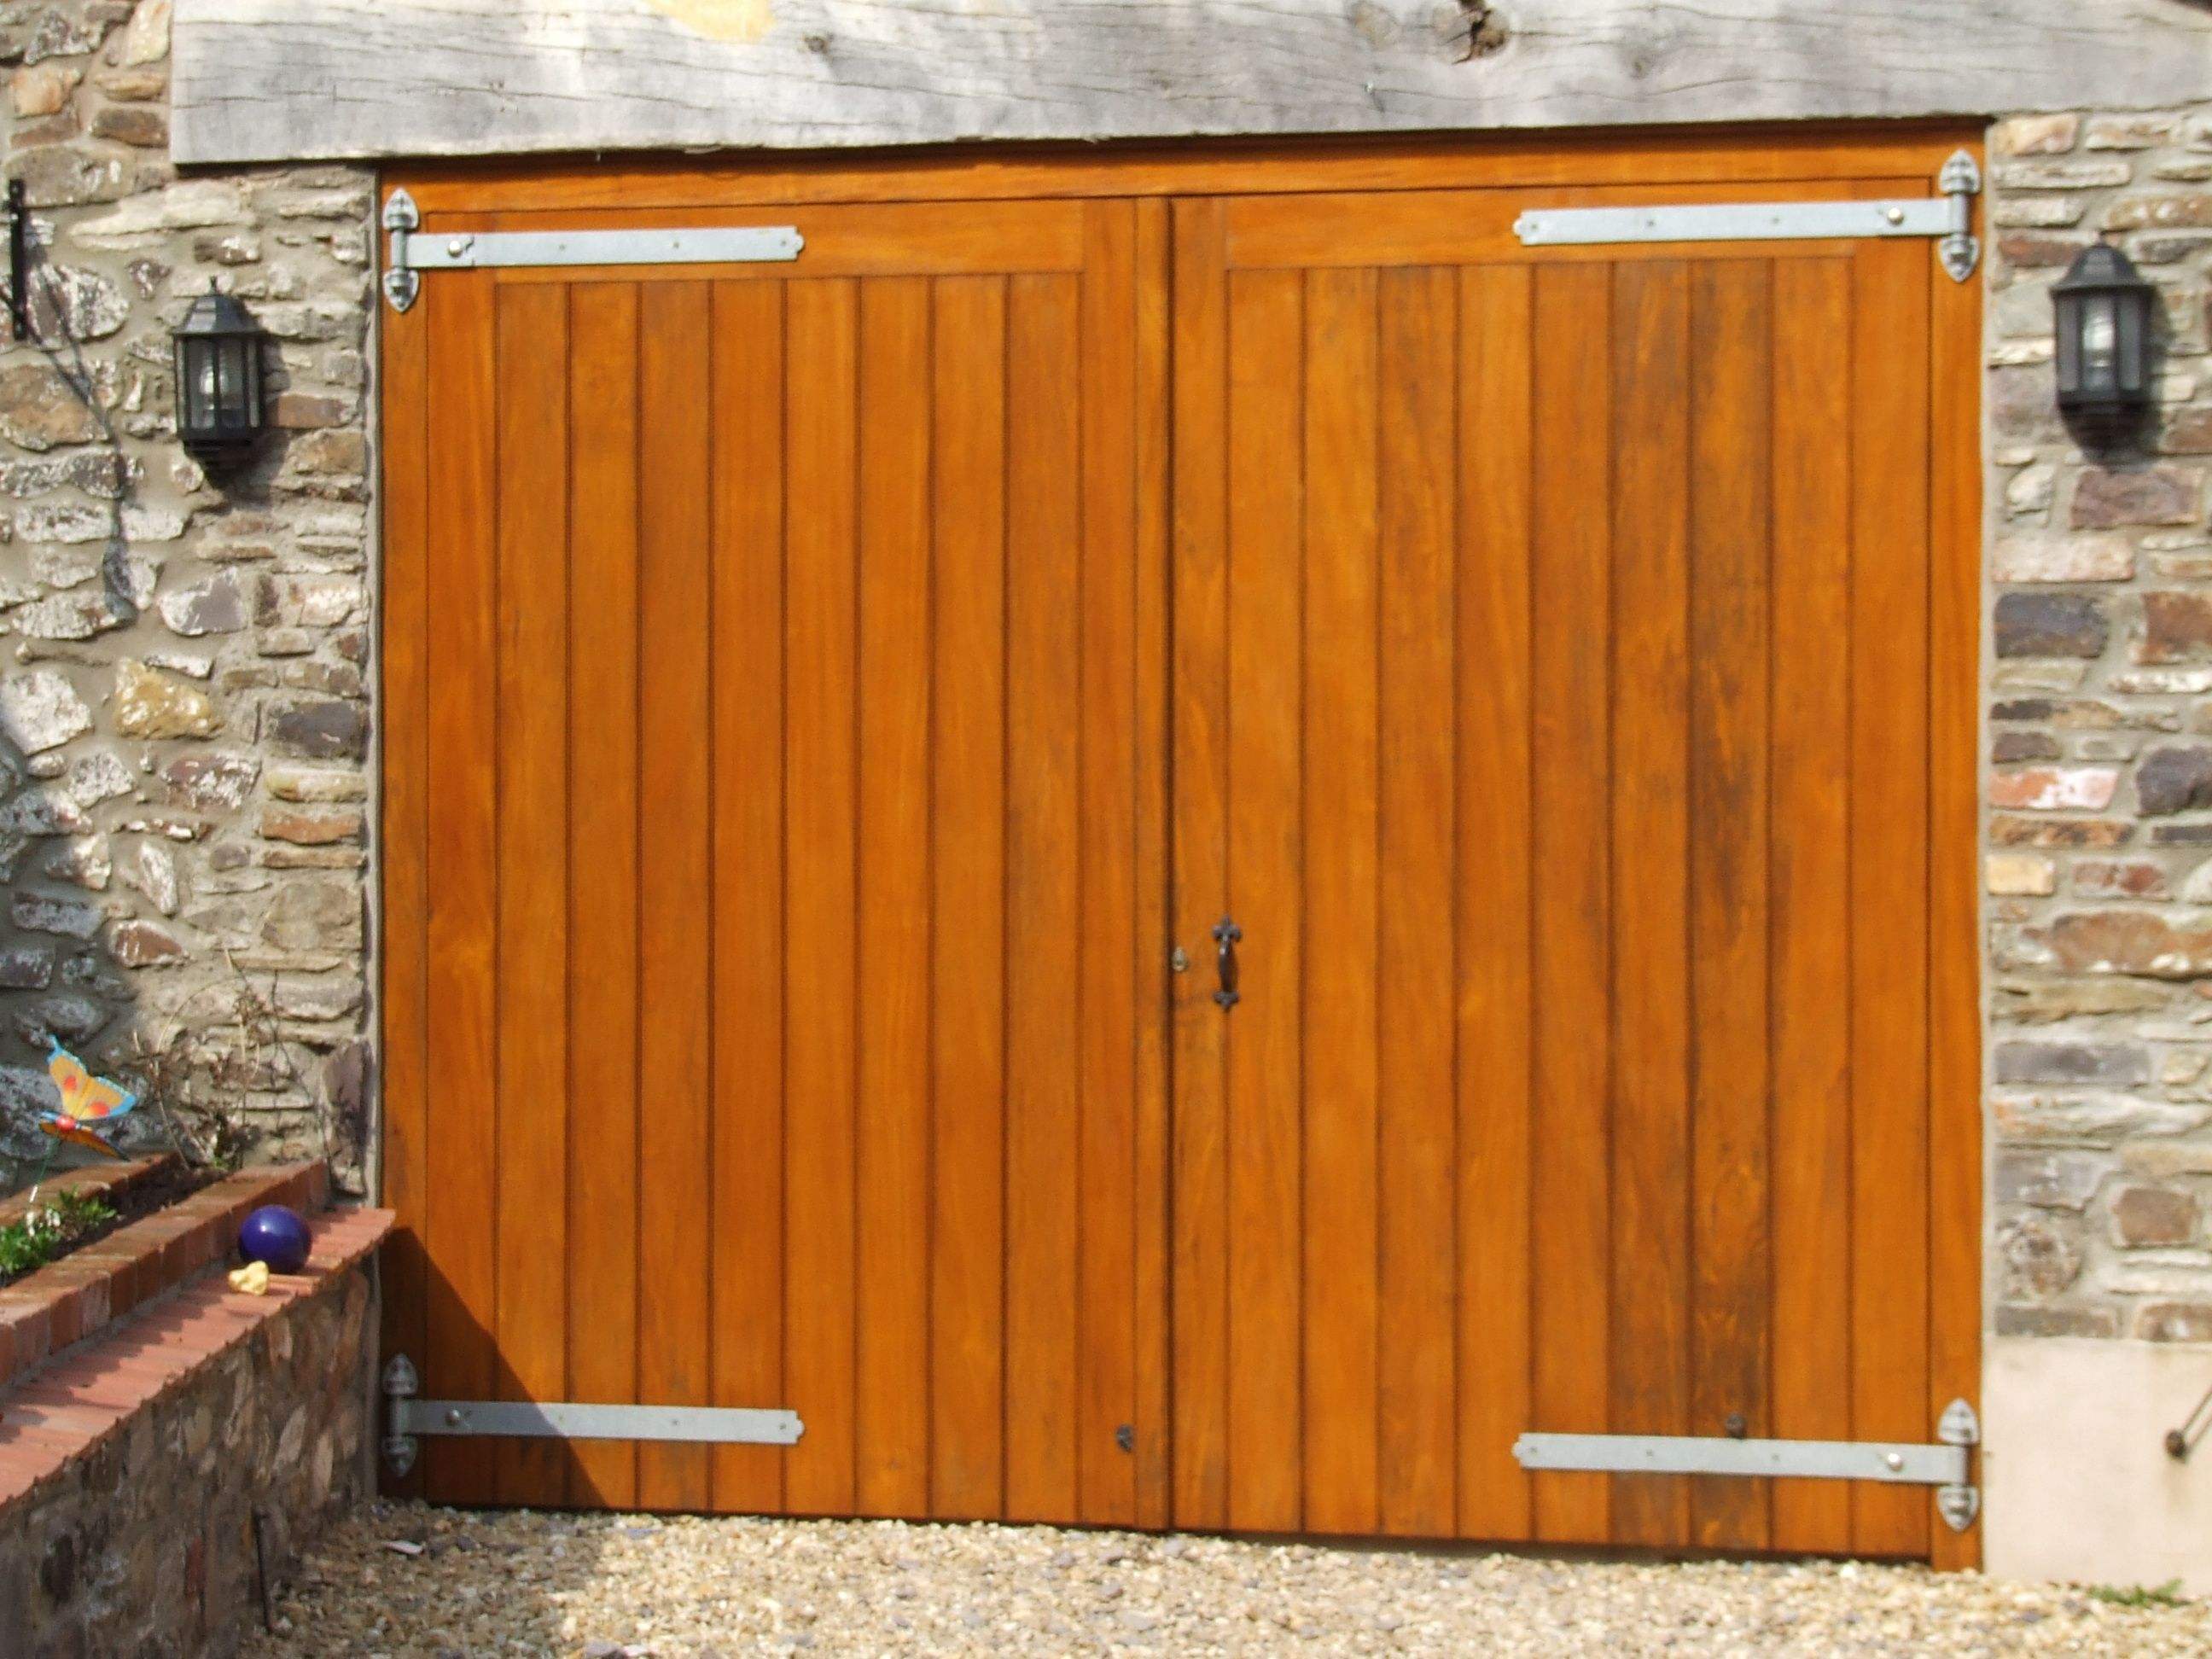 Hardwood Garage Doors Coated With Sikkens Light Oak Stain And Fitted With Galvanized Fittings Casas Ideias